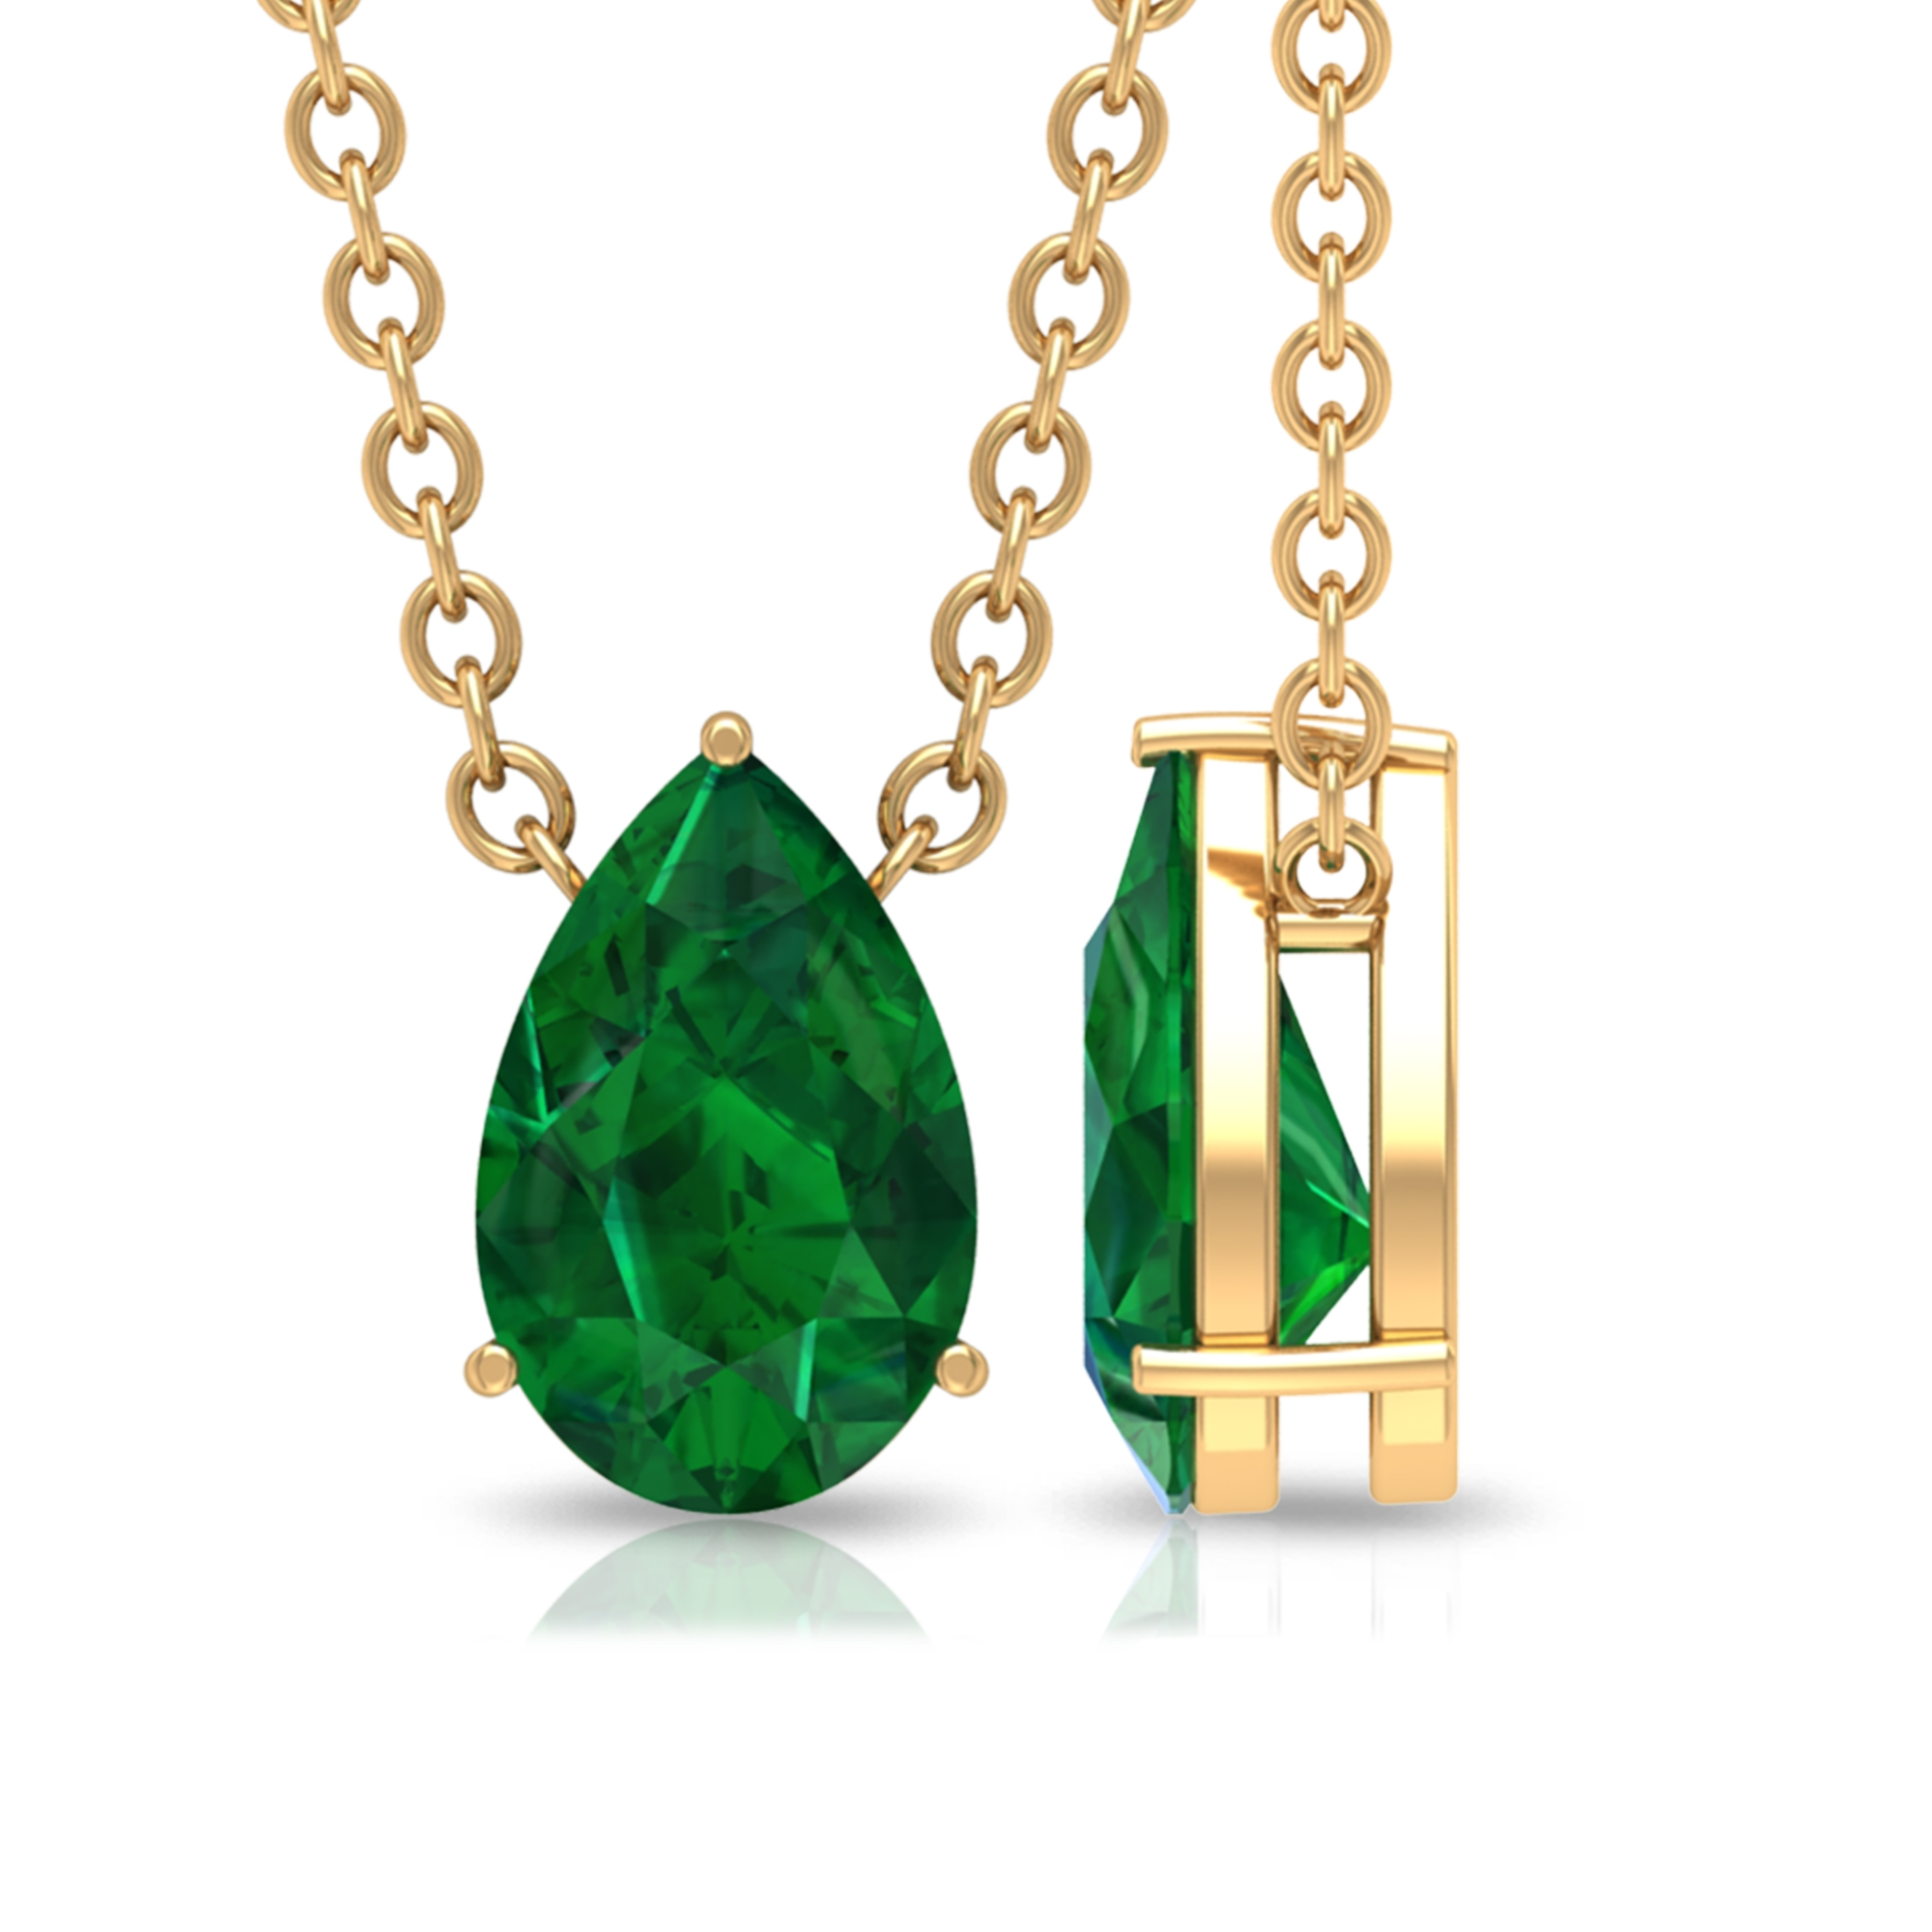 4.5X7 MM Teardrop Emerald Solitaire Pendant in 3 Prong Setting